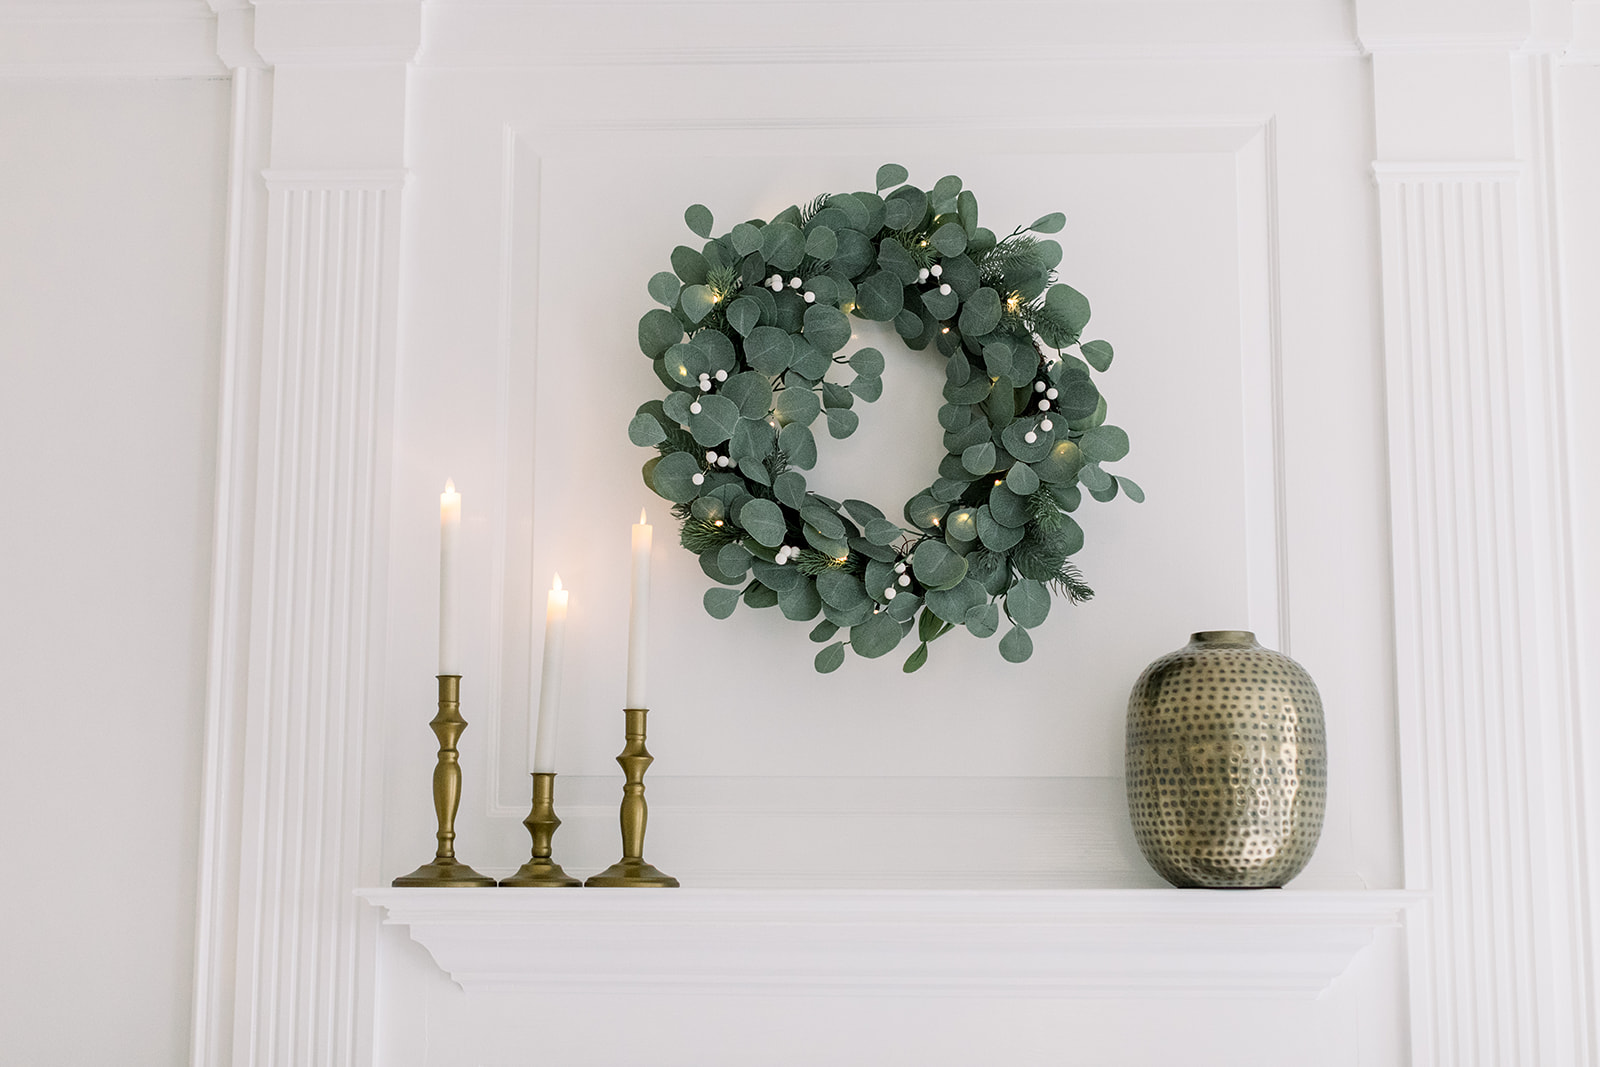 Connecticut life and style blogger Lauren McBride shares her newest QVC launch, a holiday-inspired giftable collection.